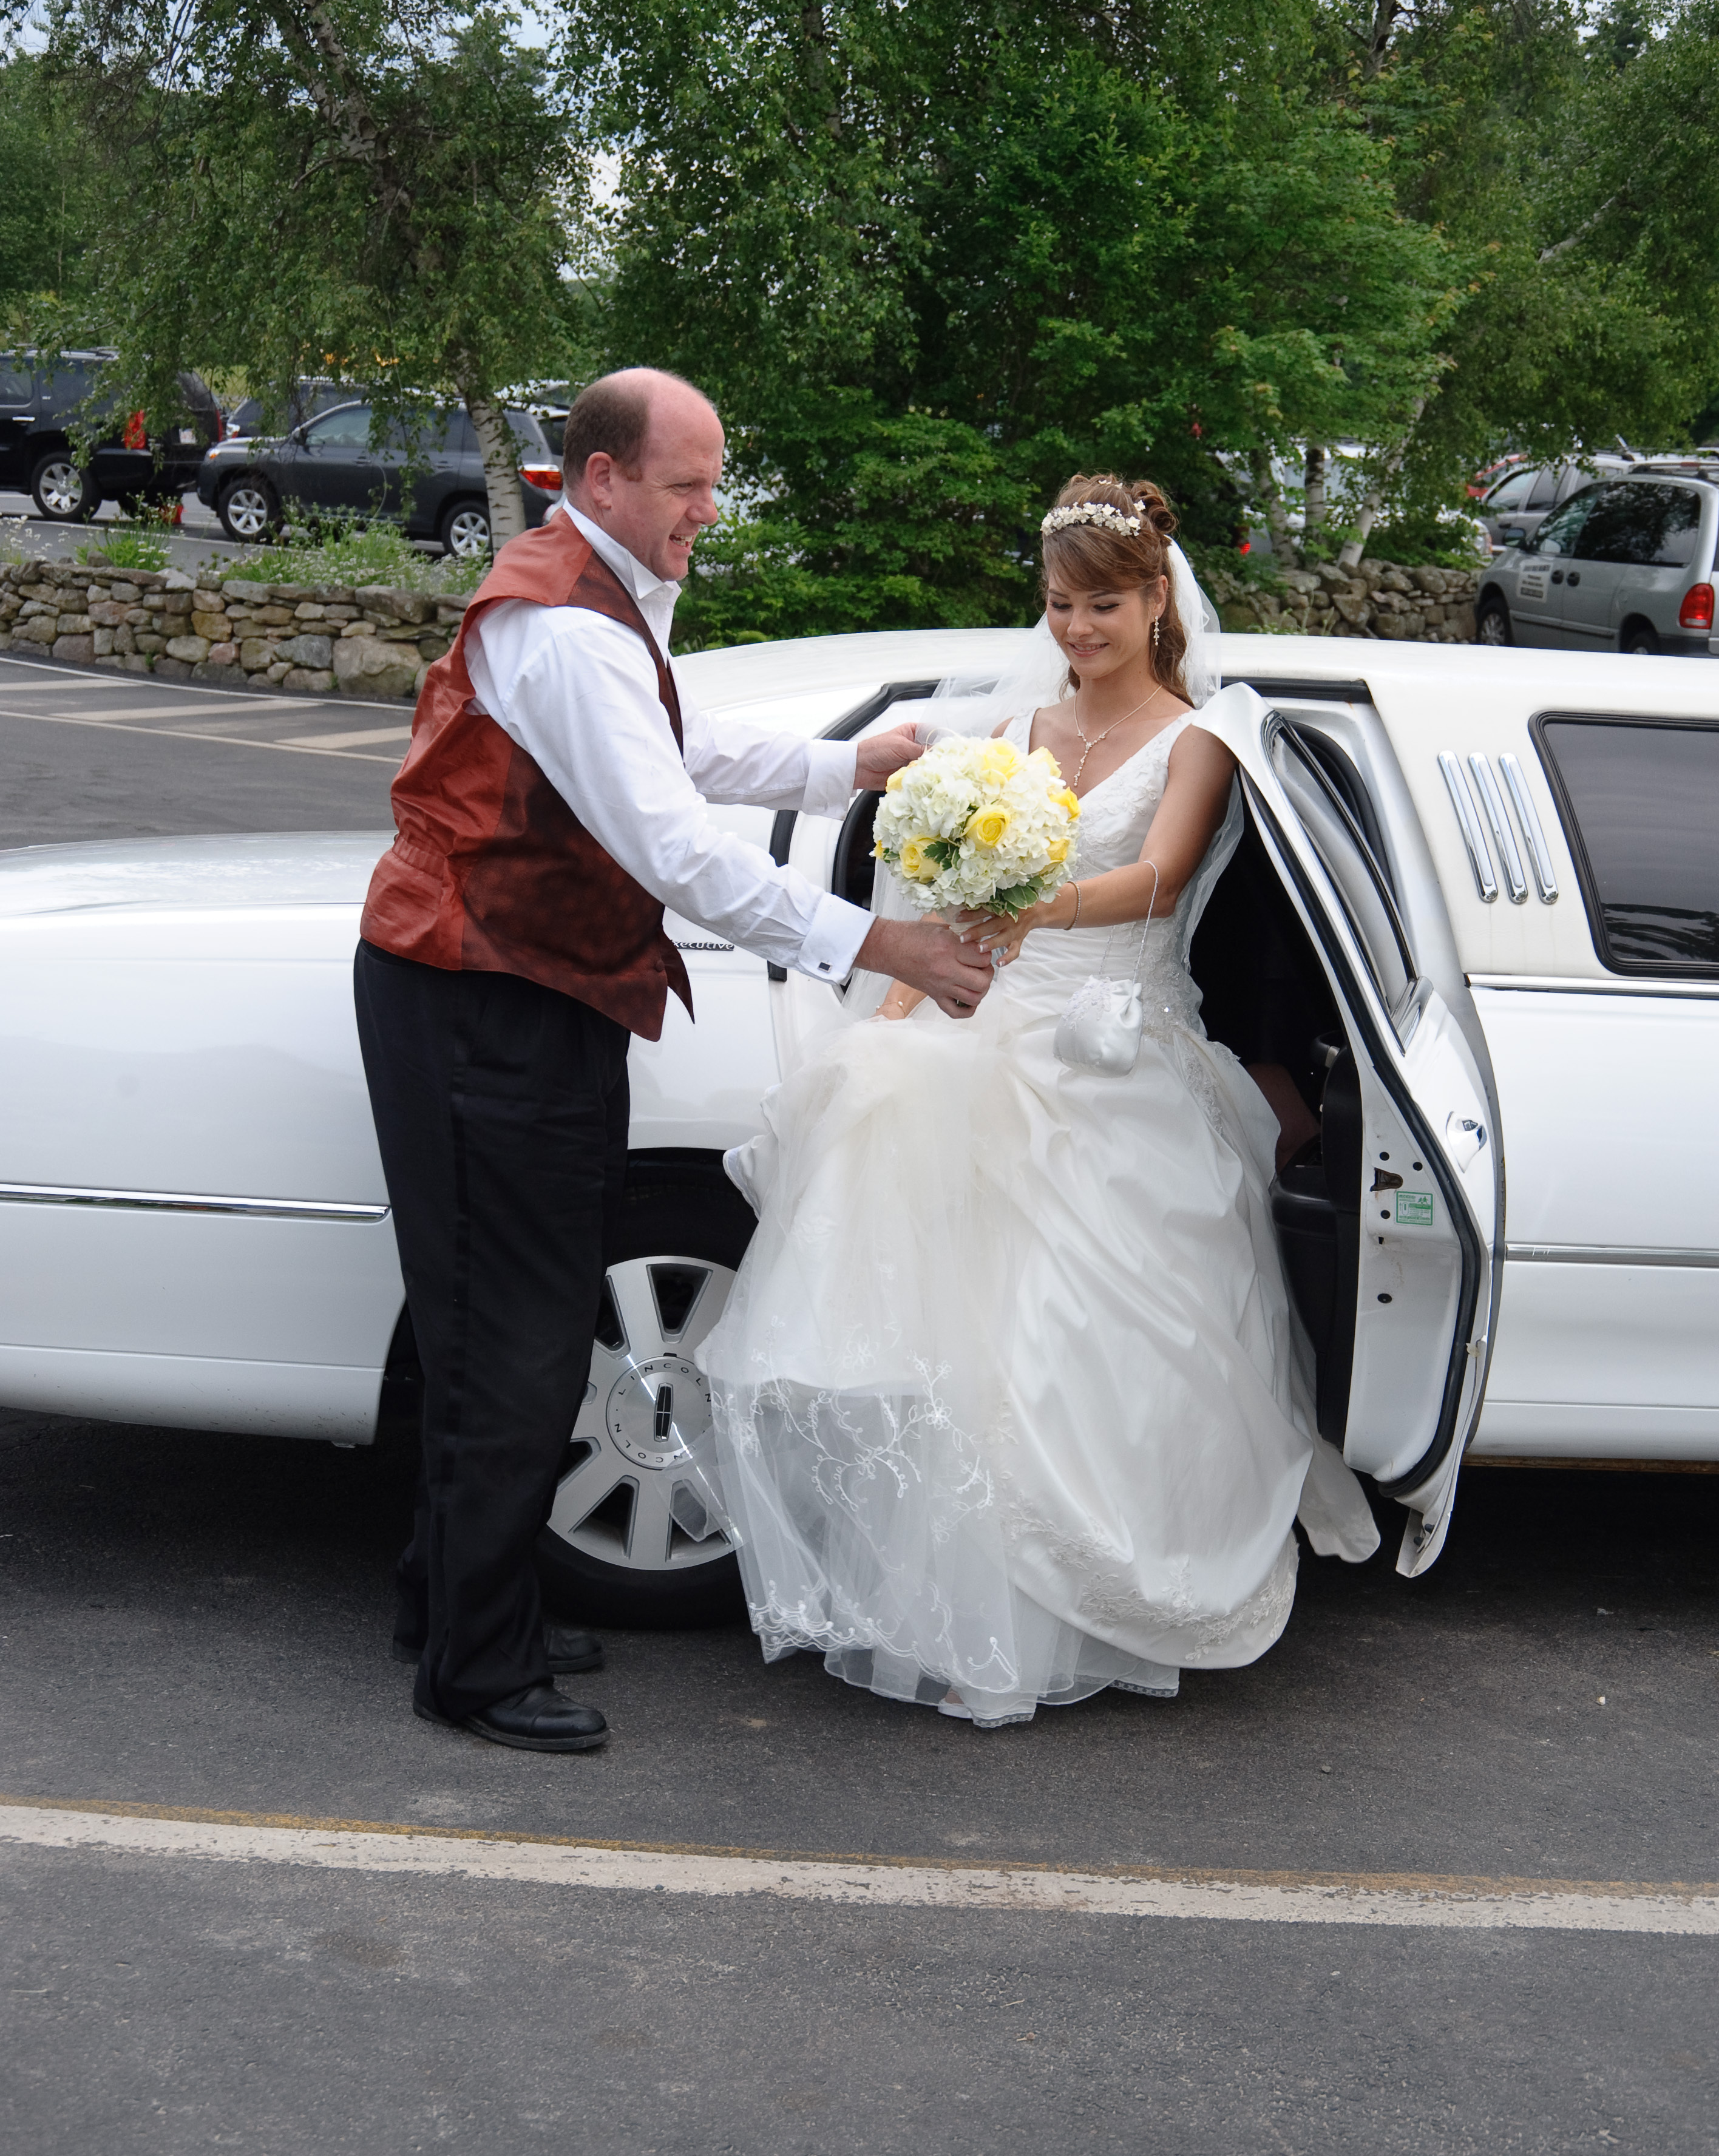 Wedding Dresses, Fashion, white, red, dress, Bride, Limousine, Chauffeur, A limo affair